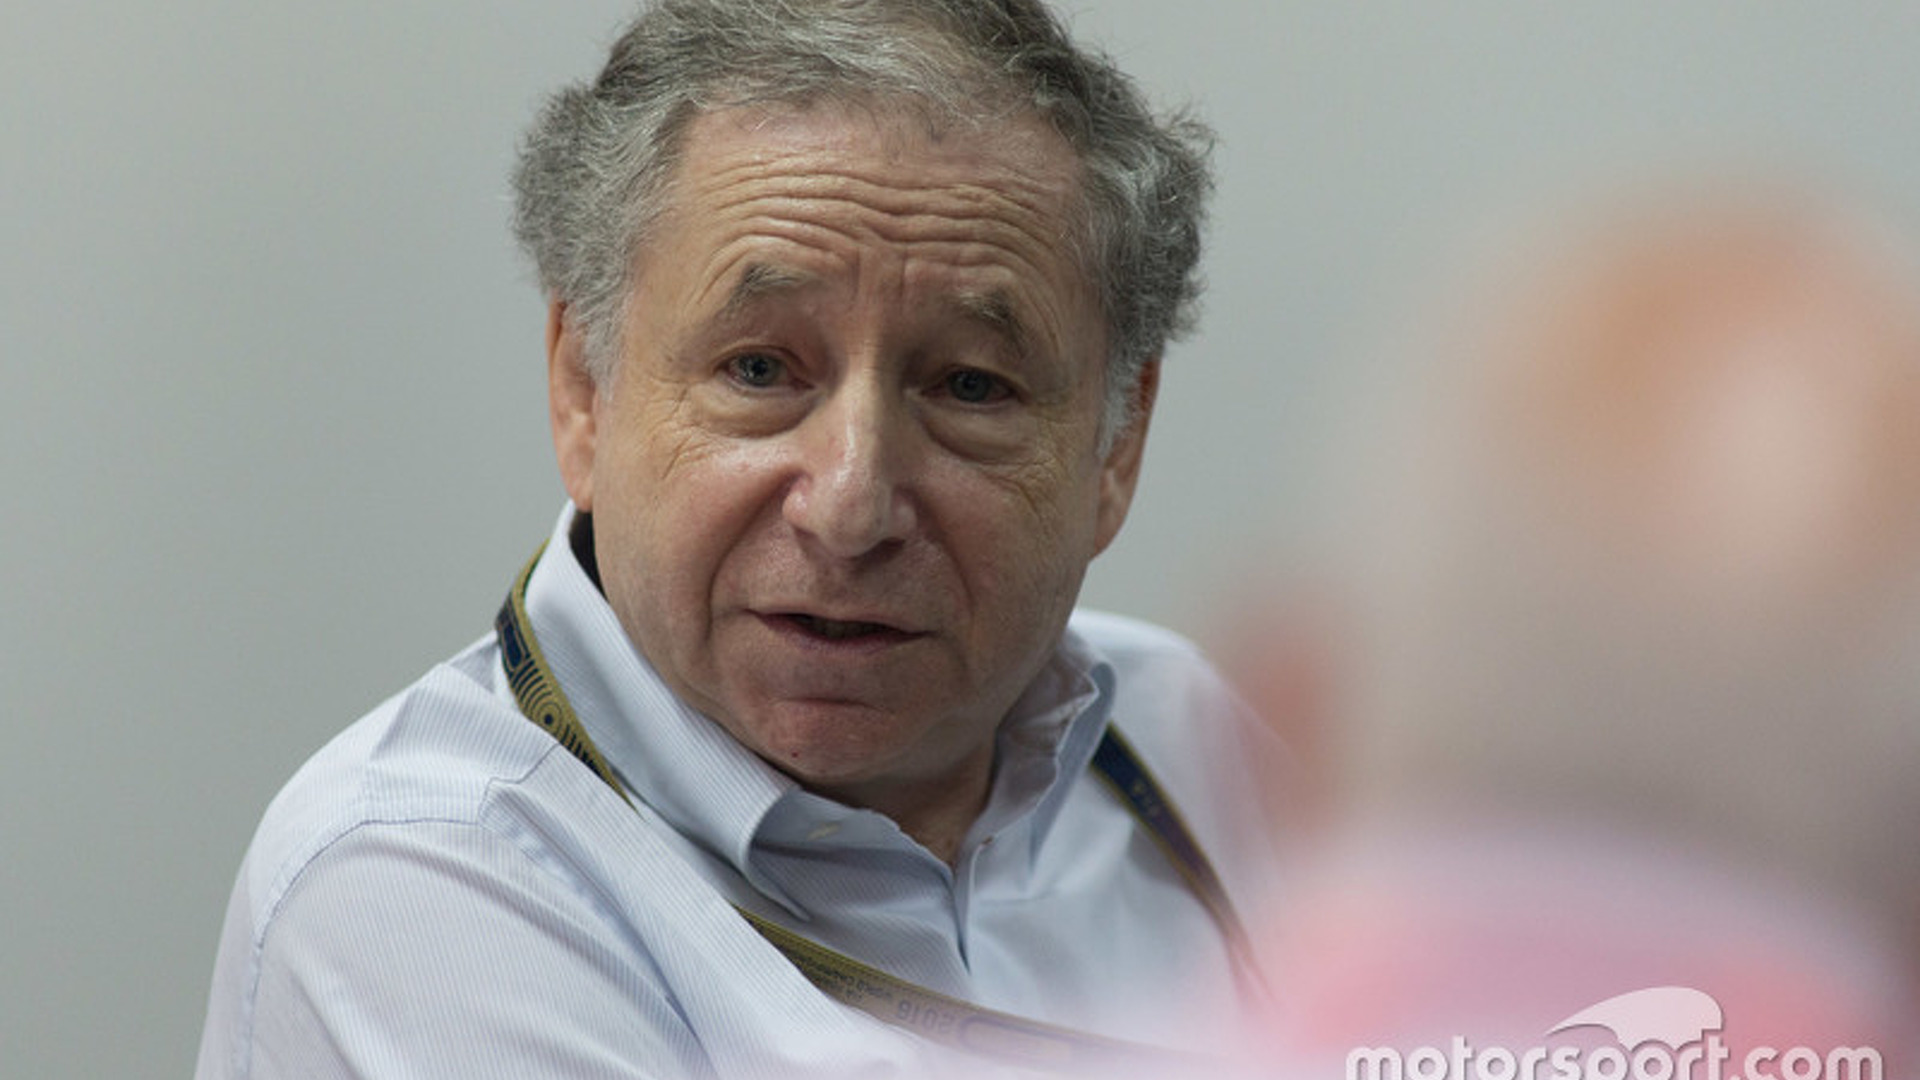 Todt speaks out as UN takes action on road safety